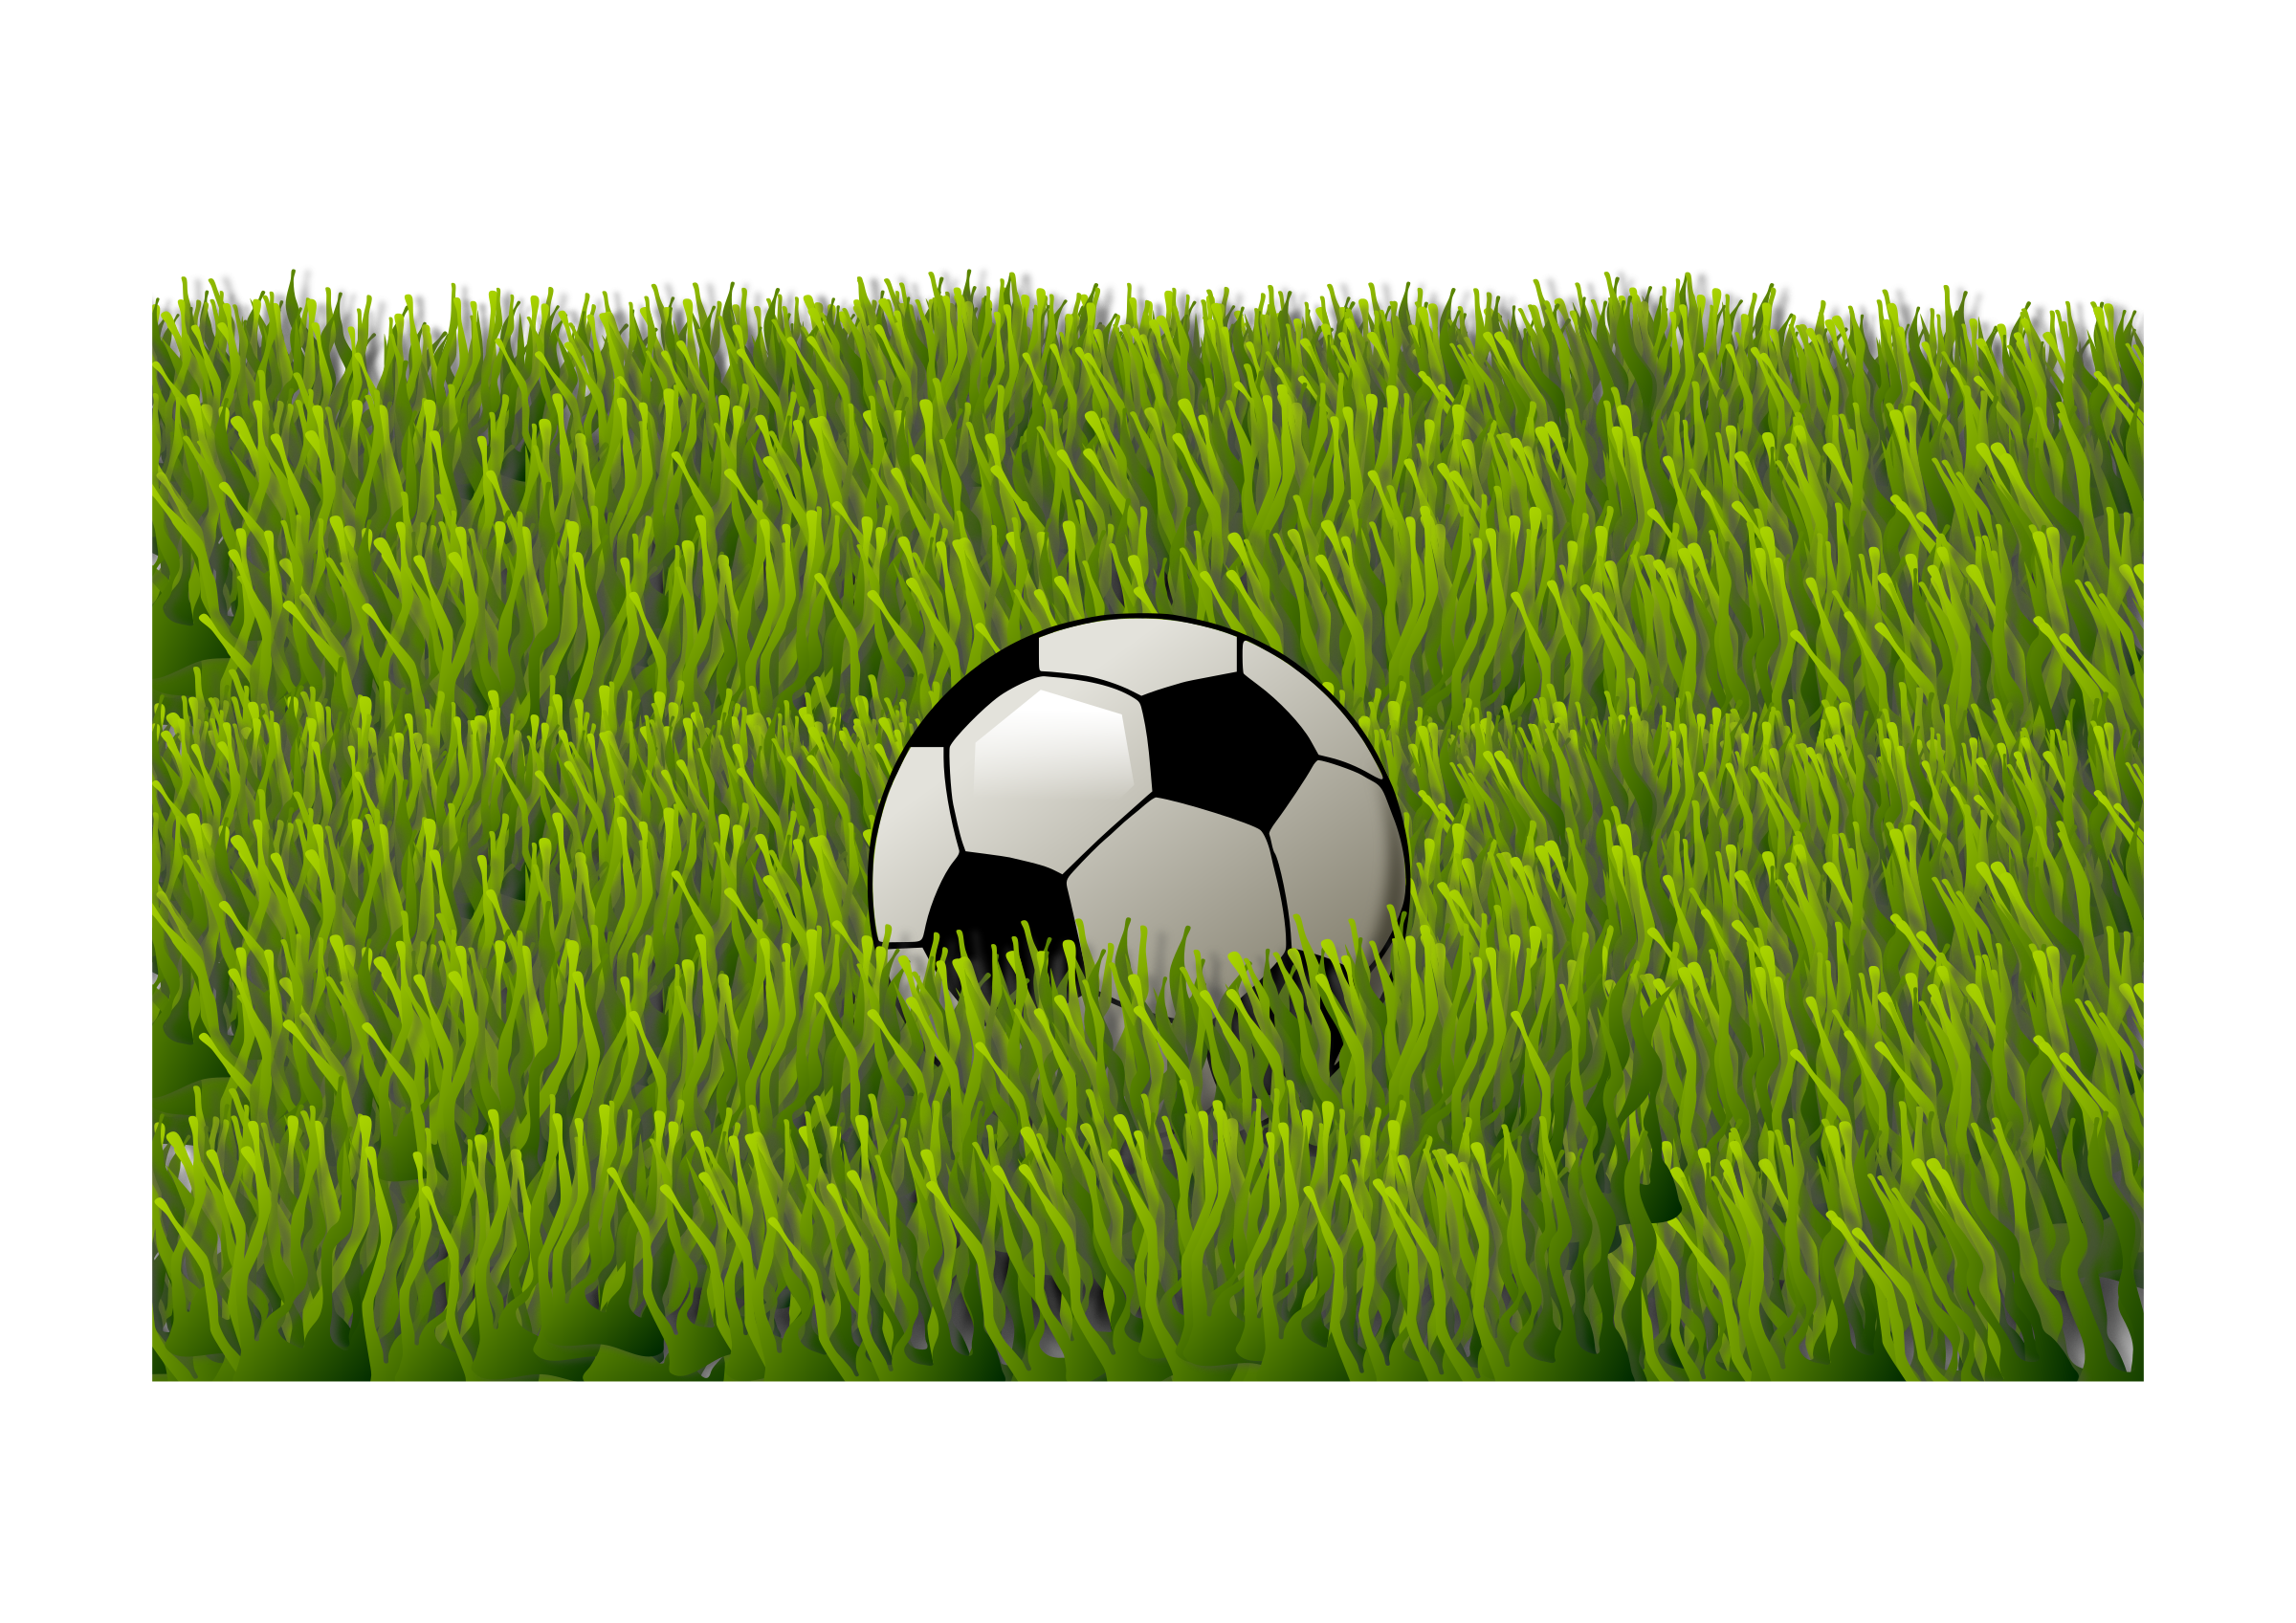 On icons png free. Grass clipart soccer ball